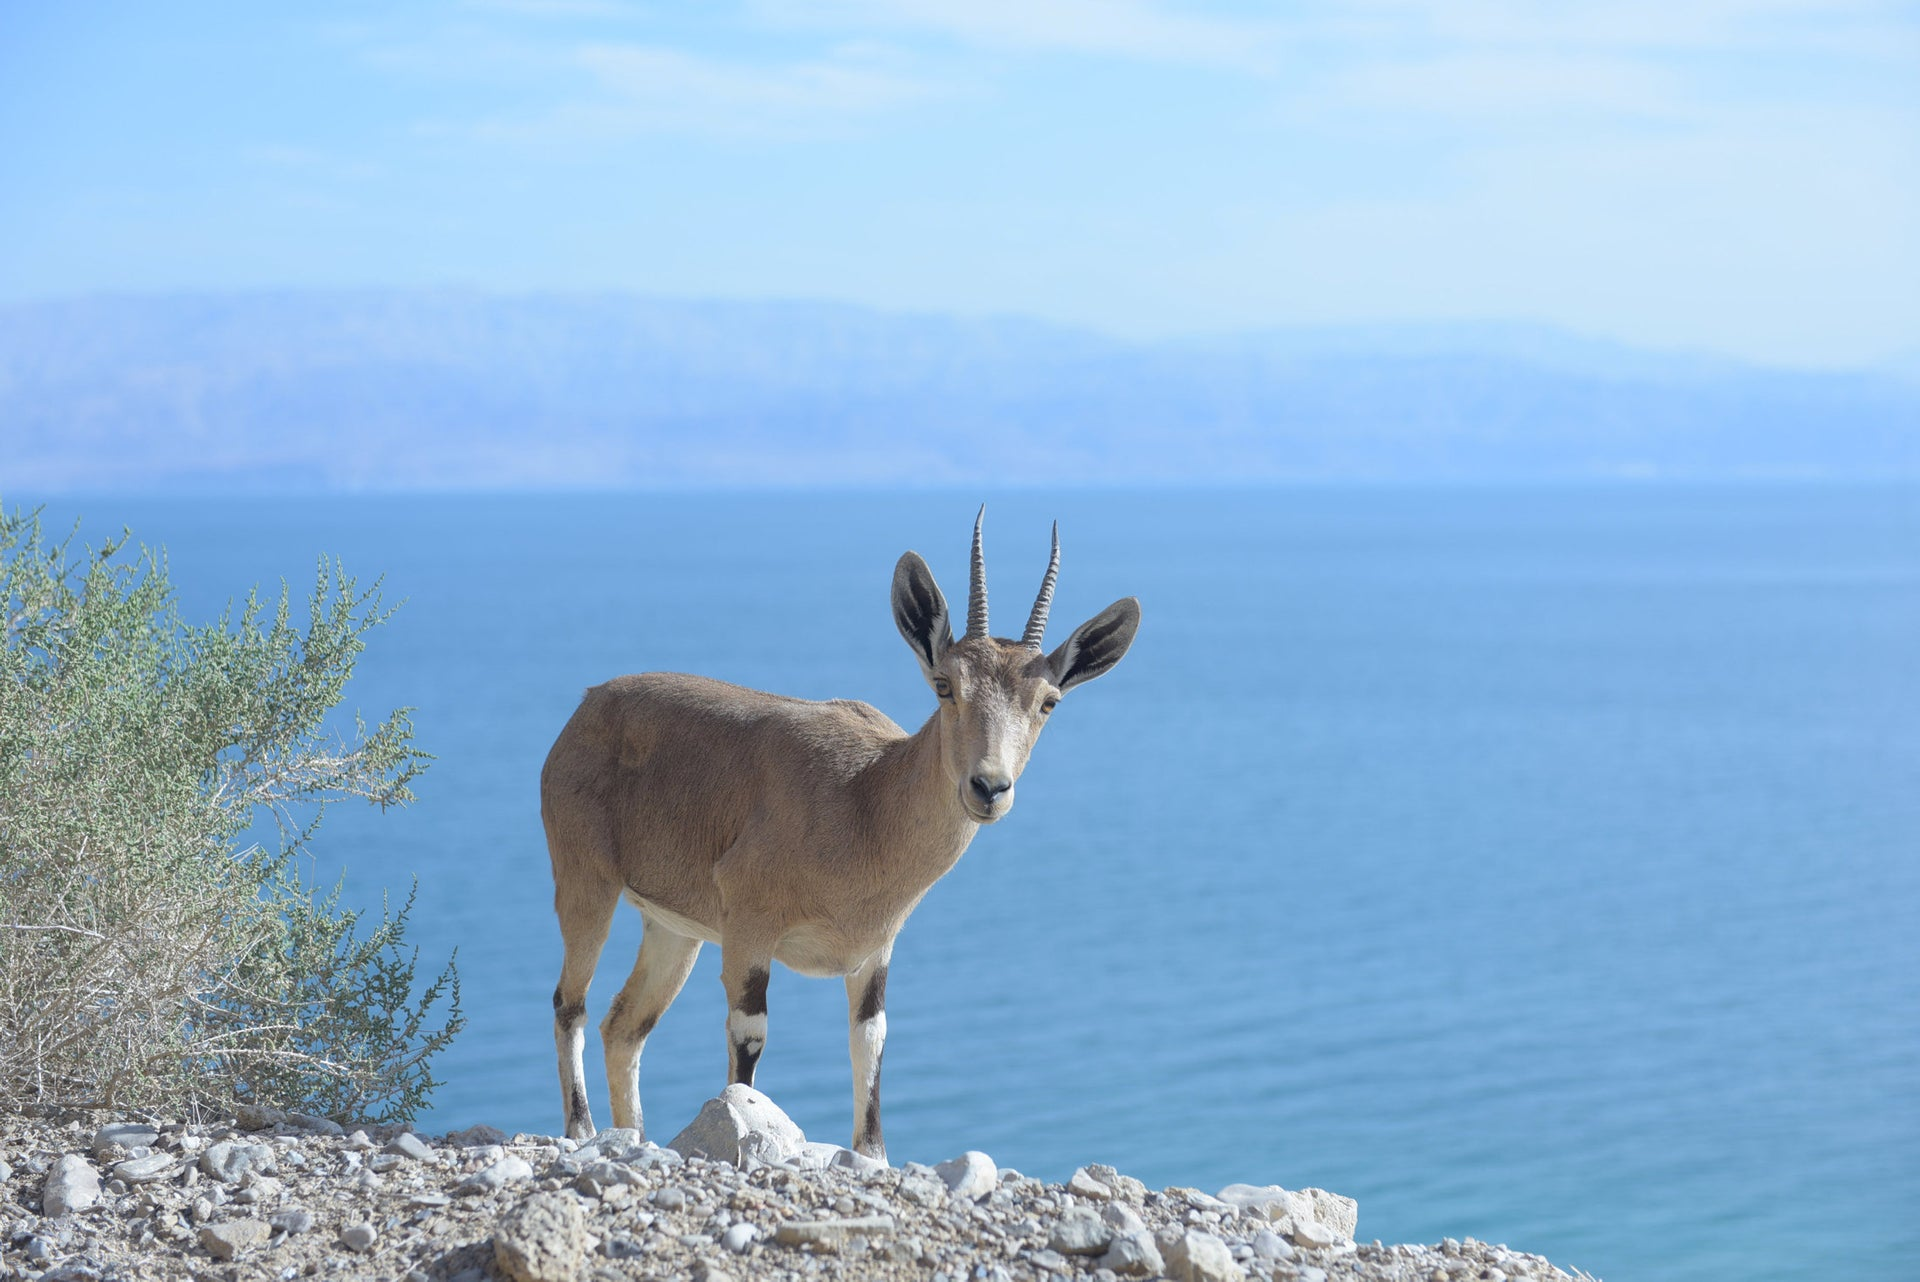 Ibex by the Dead Sea